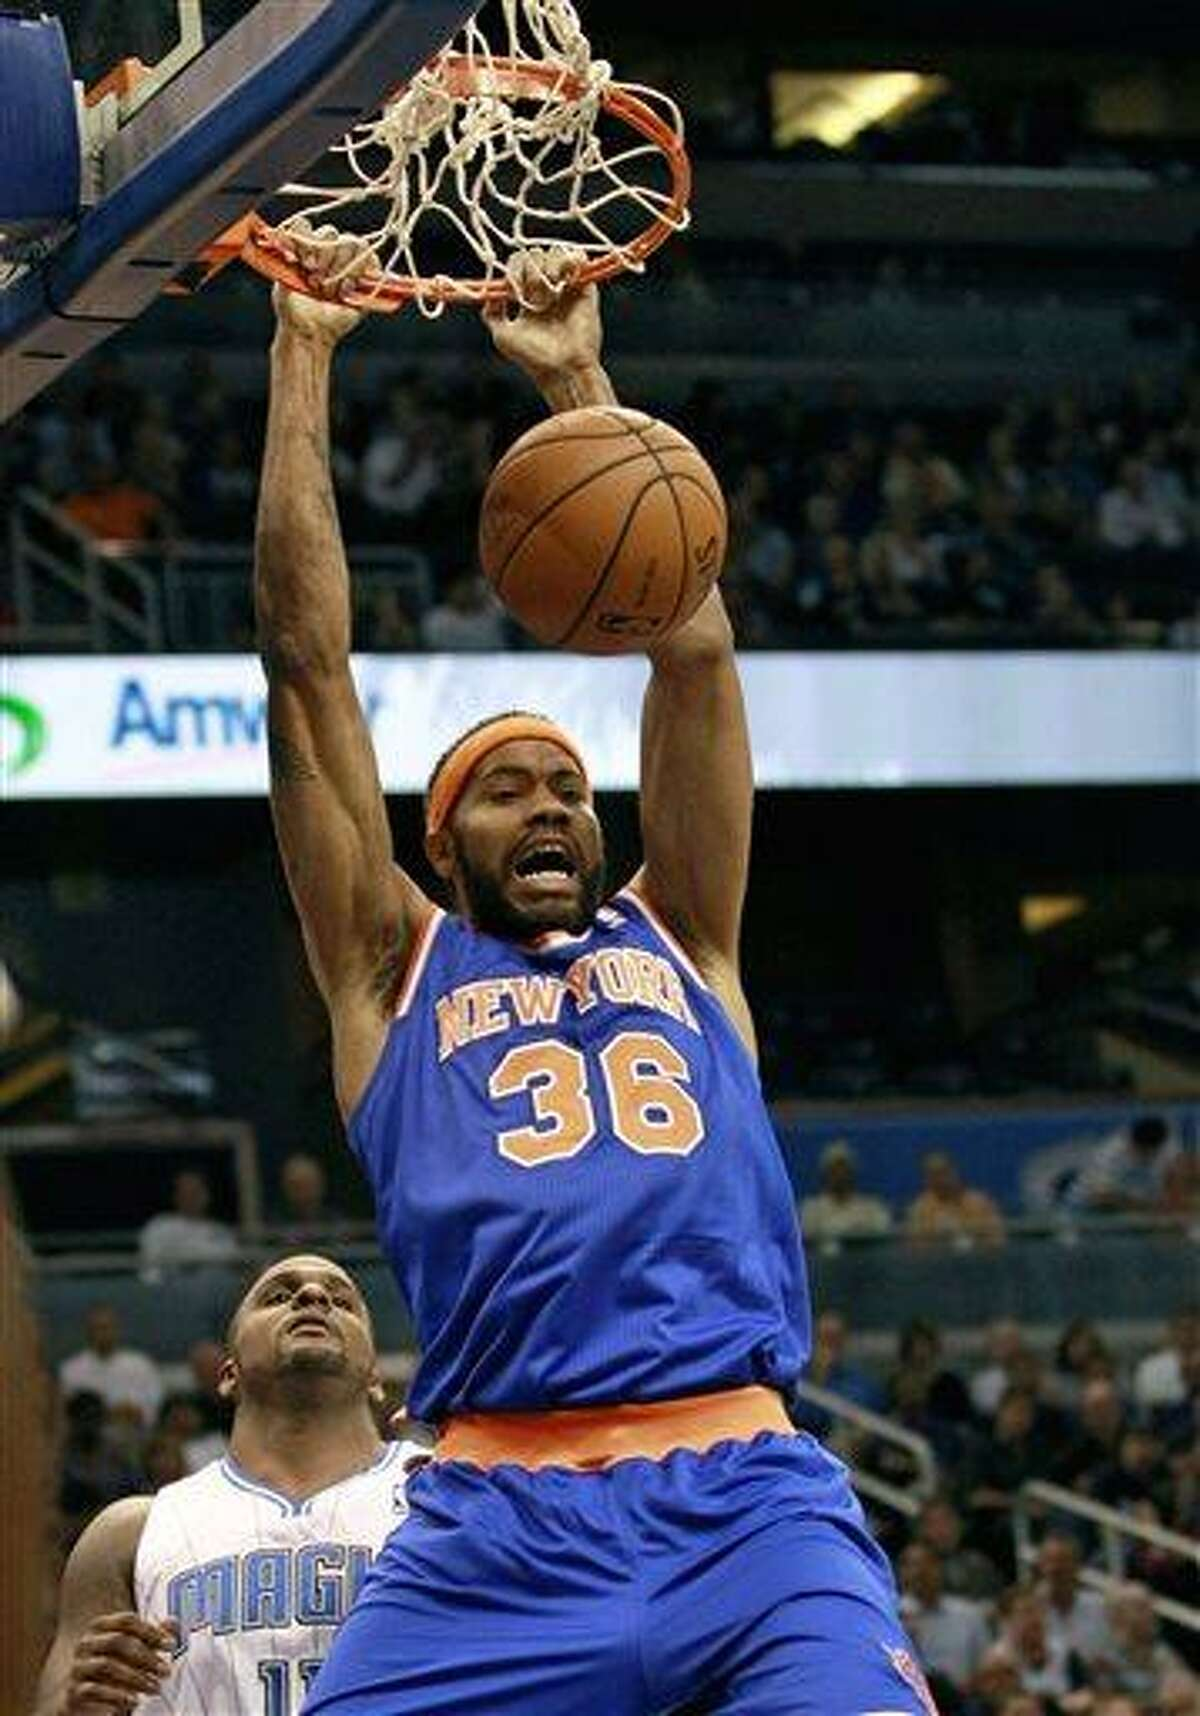 Rasheed Wallace (36) has retired again from the NBA after he was unable to recover from a left foot injury. The Knicks say in a statement that because of his injury Wallace